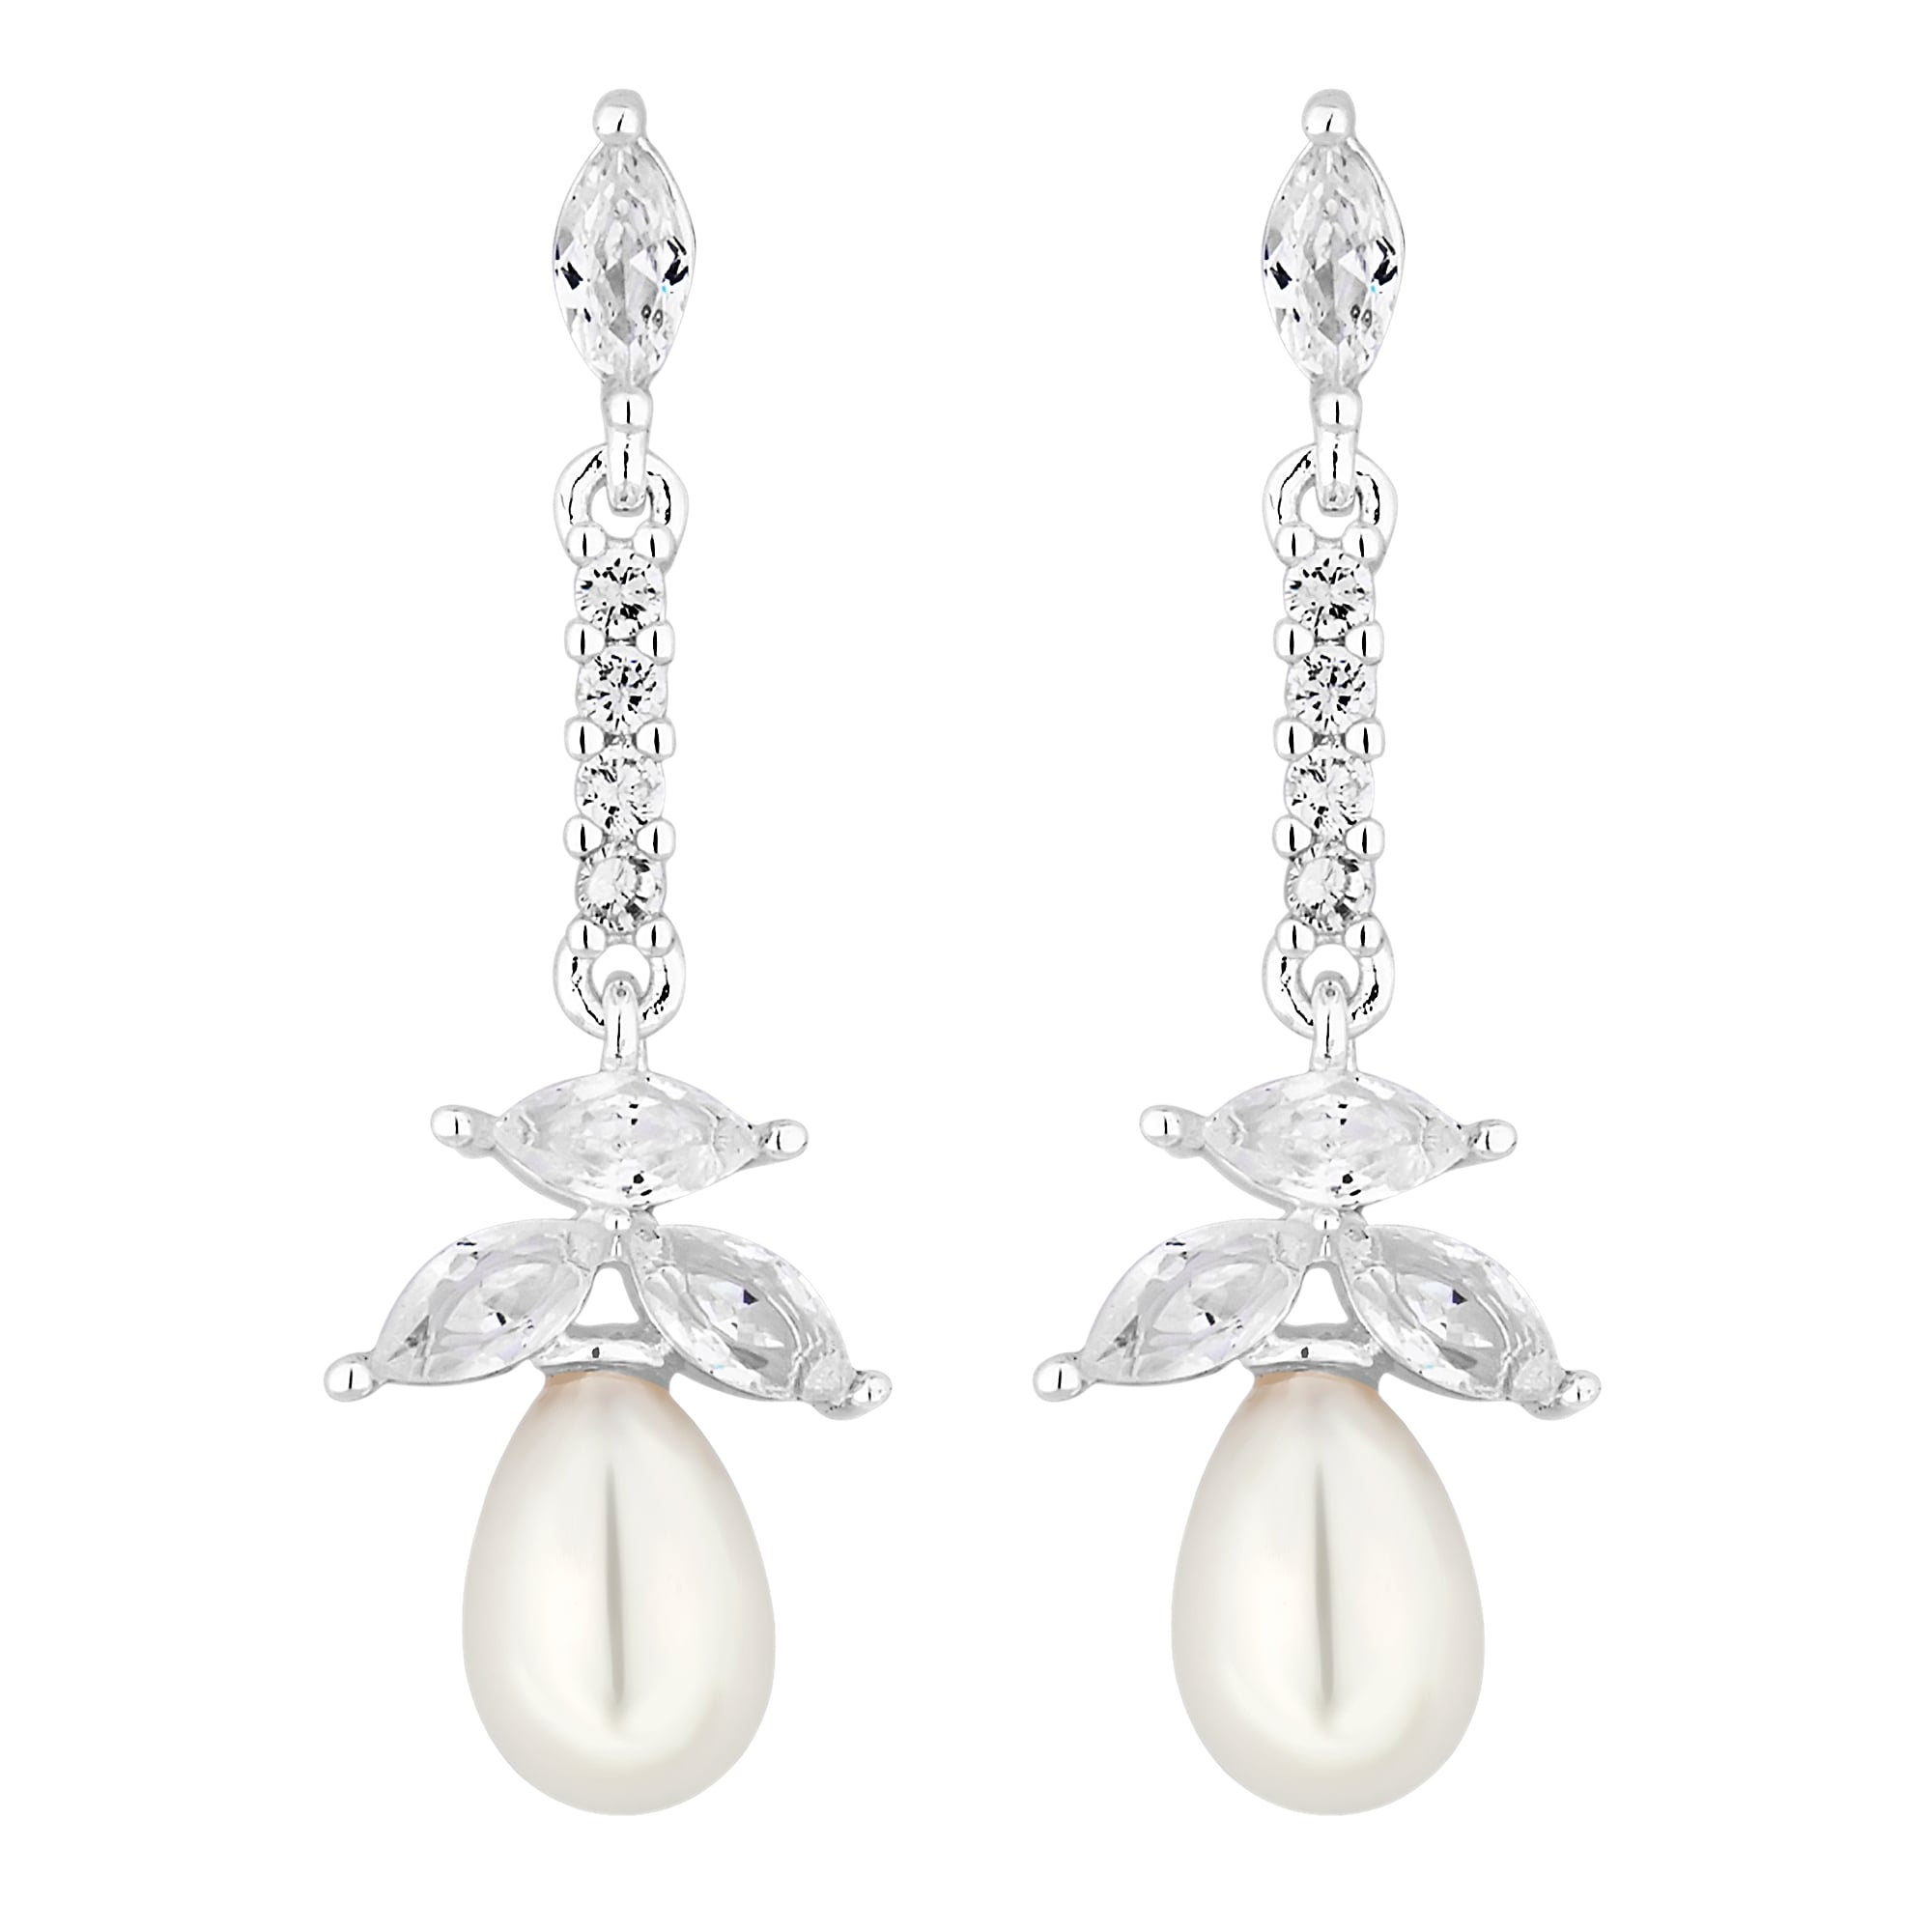 same of you one large earrings combination all recently are but double white tribal cotton crystal stud in want real and set backs pearl trendy miyabigrace japanese ways trend the time swarovski at